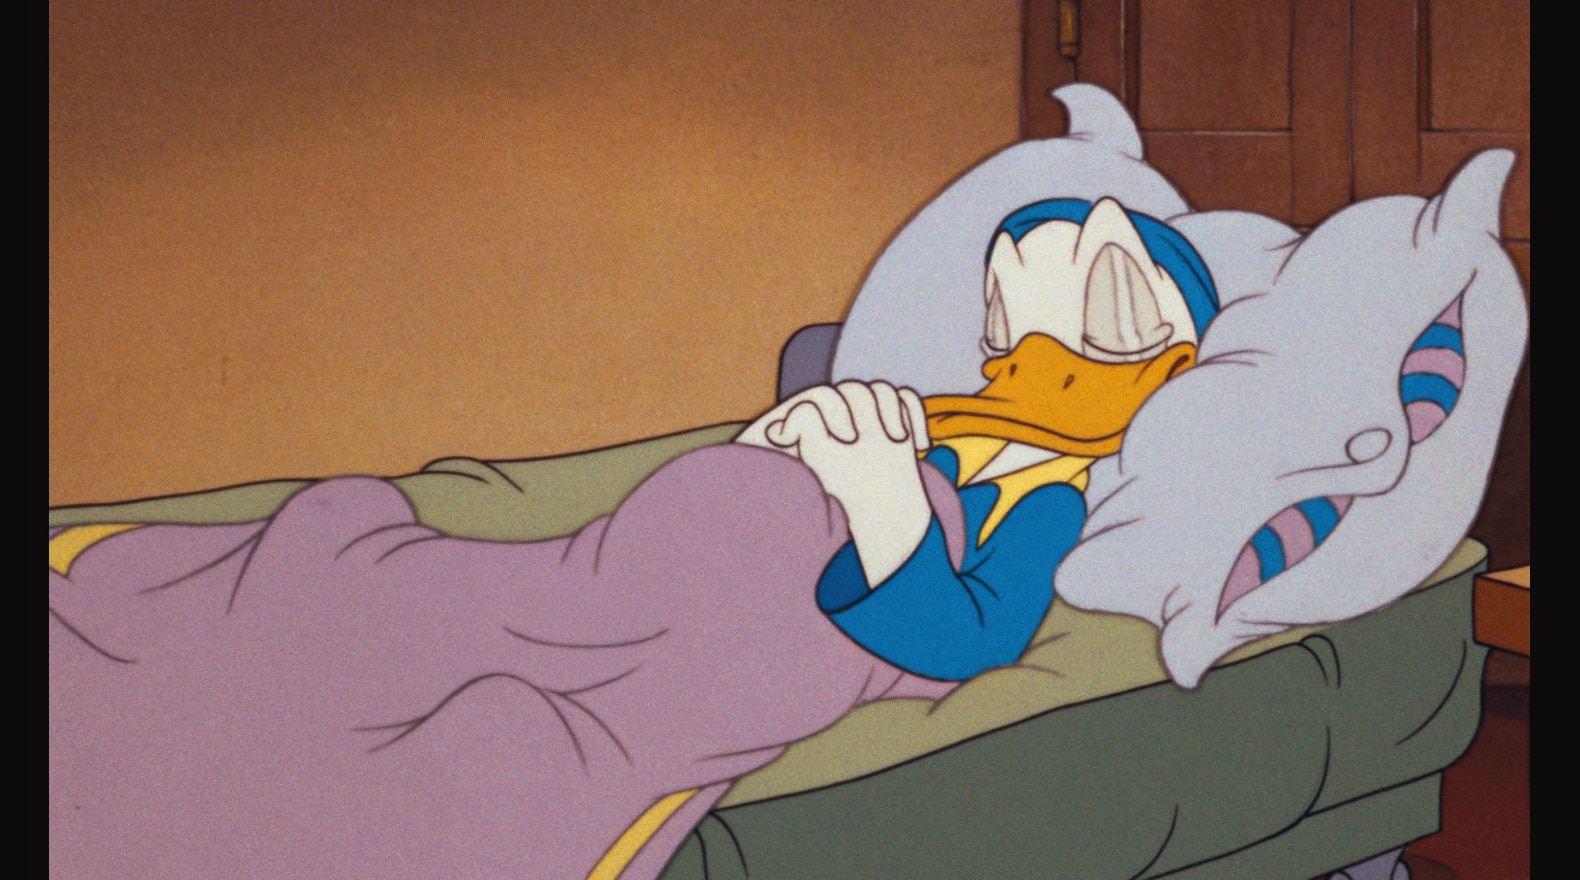 When Donald tries to get to bed early, life intervenes in the form of alarm clocks and bed springs.